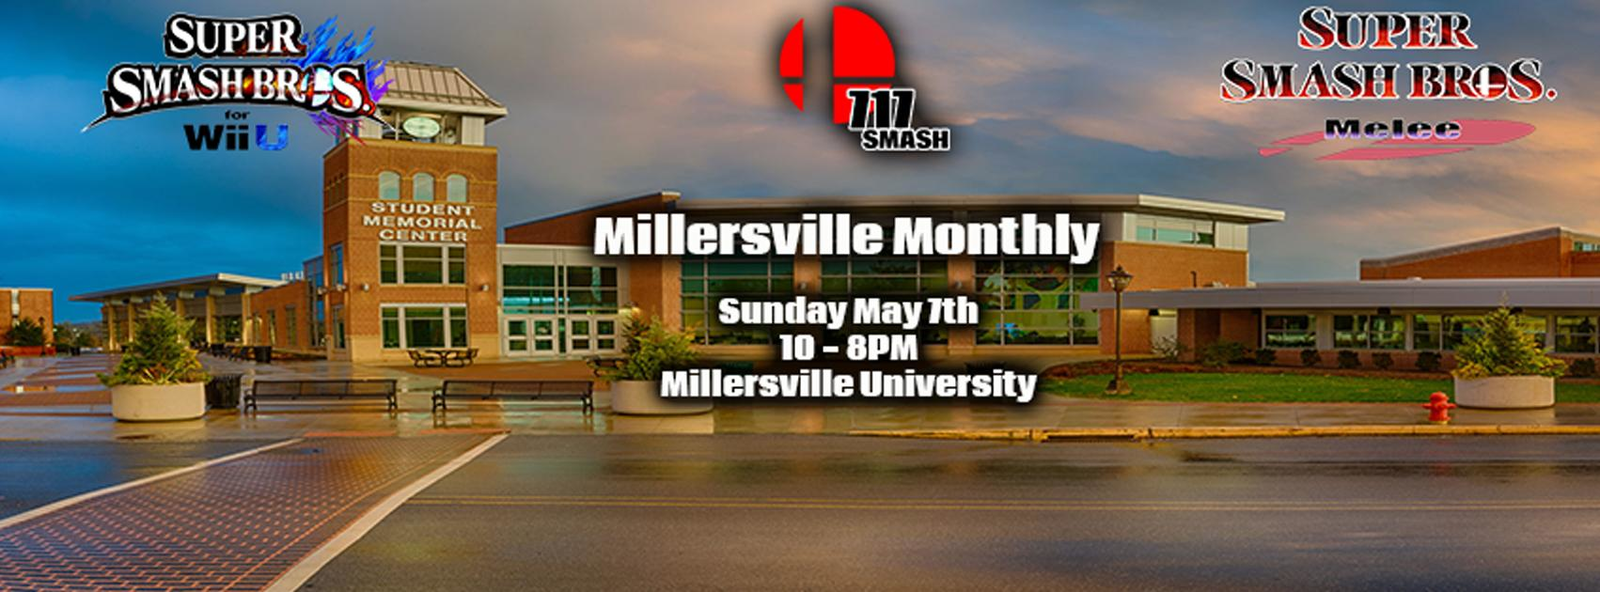 millersville personals Search a to z search the millersville university site index using the text box below.